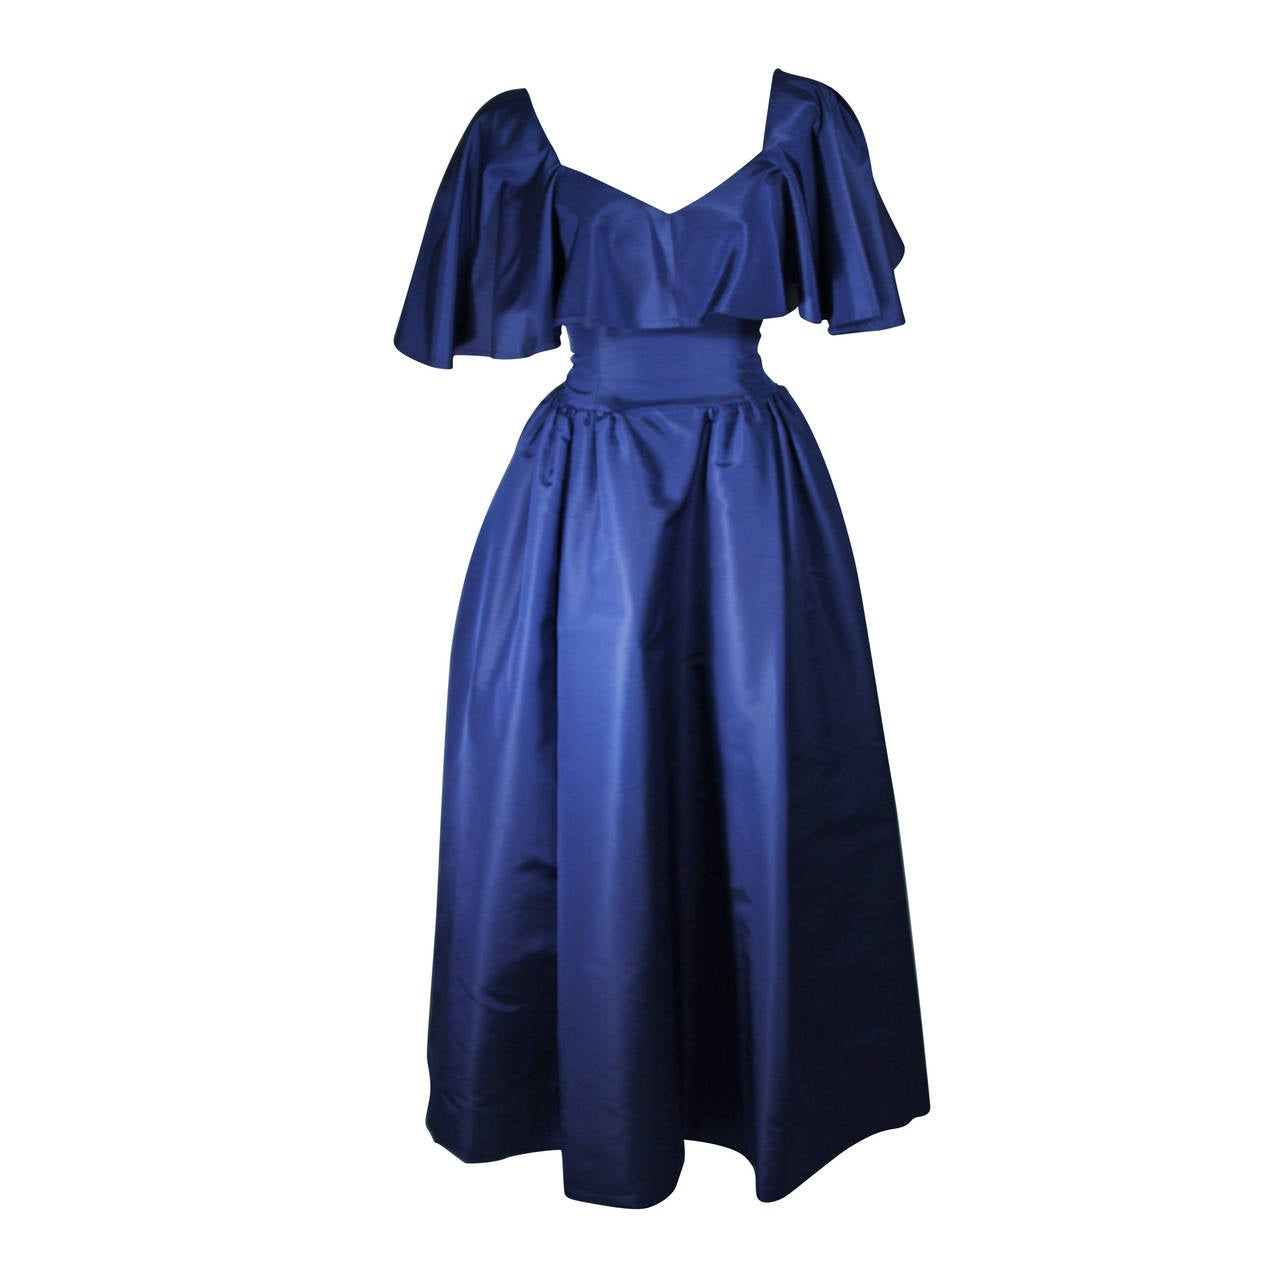 Circa 1980s Pauline Trigere Midnight Blue Faille Ball Gown with Cape Collar 6 1